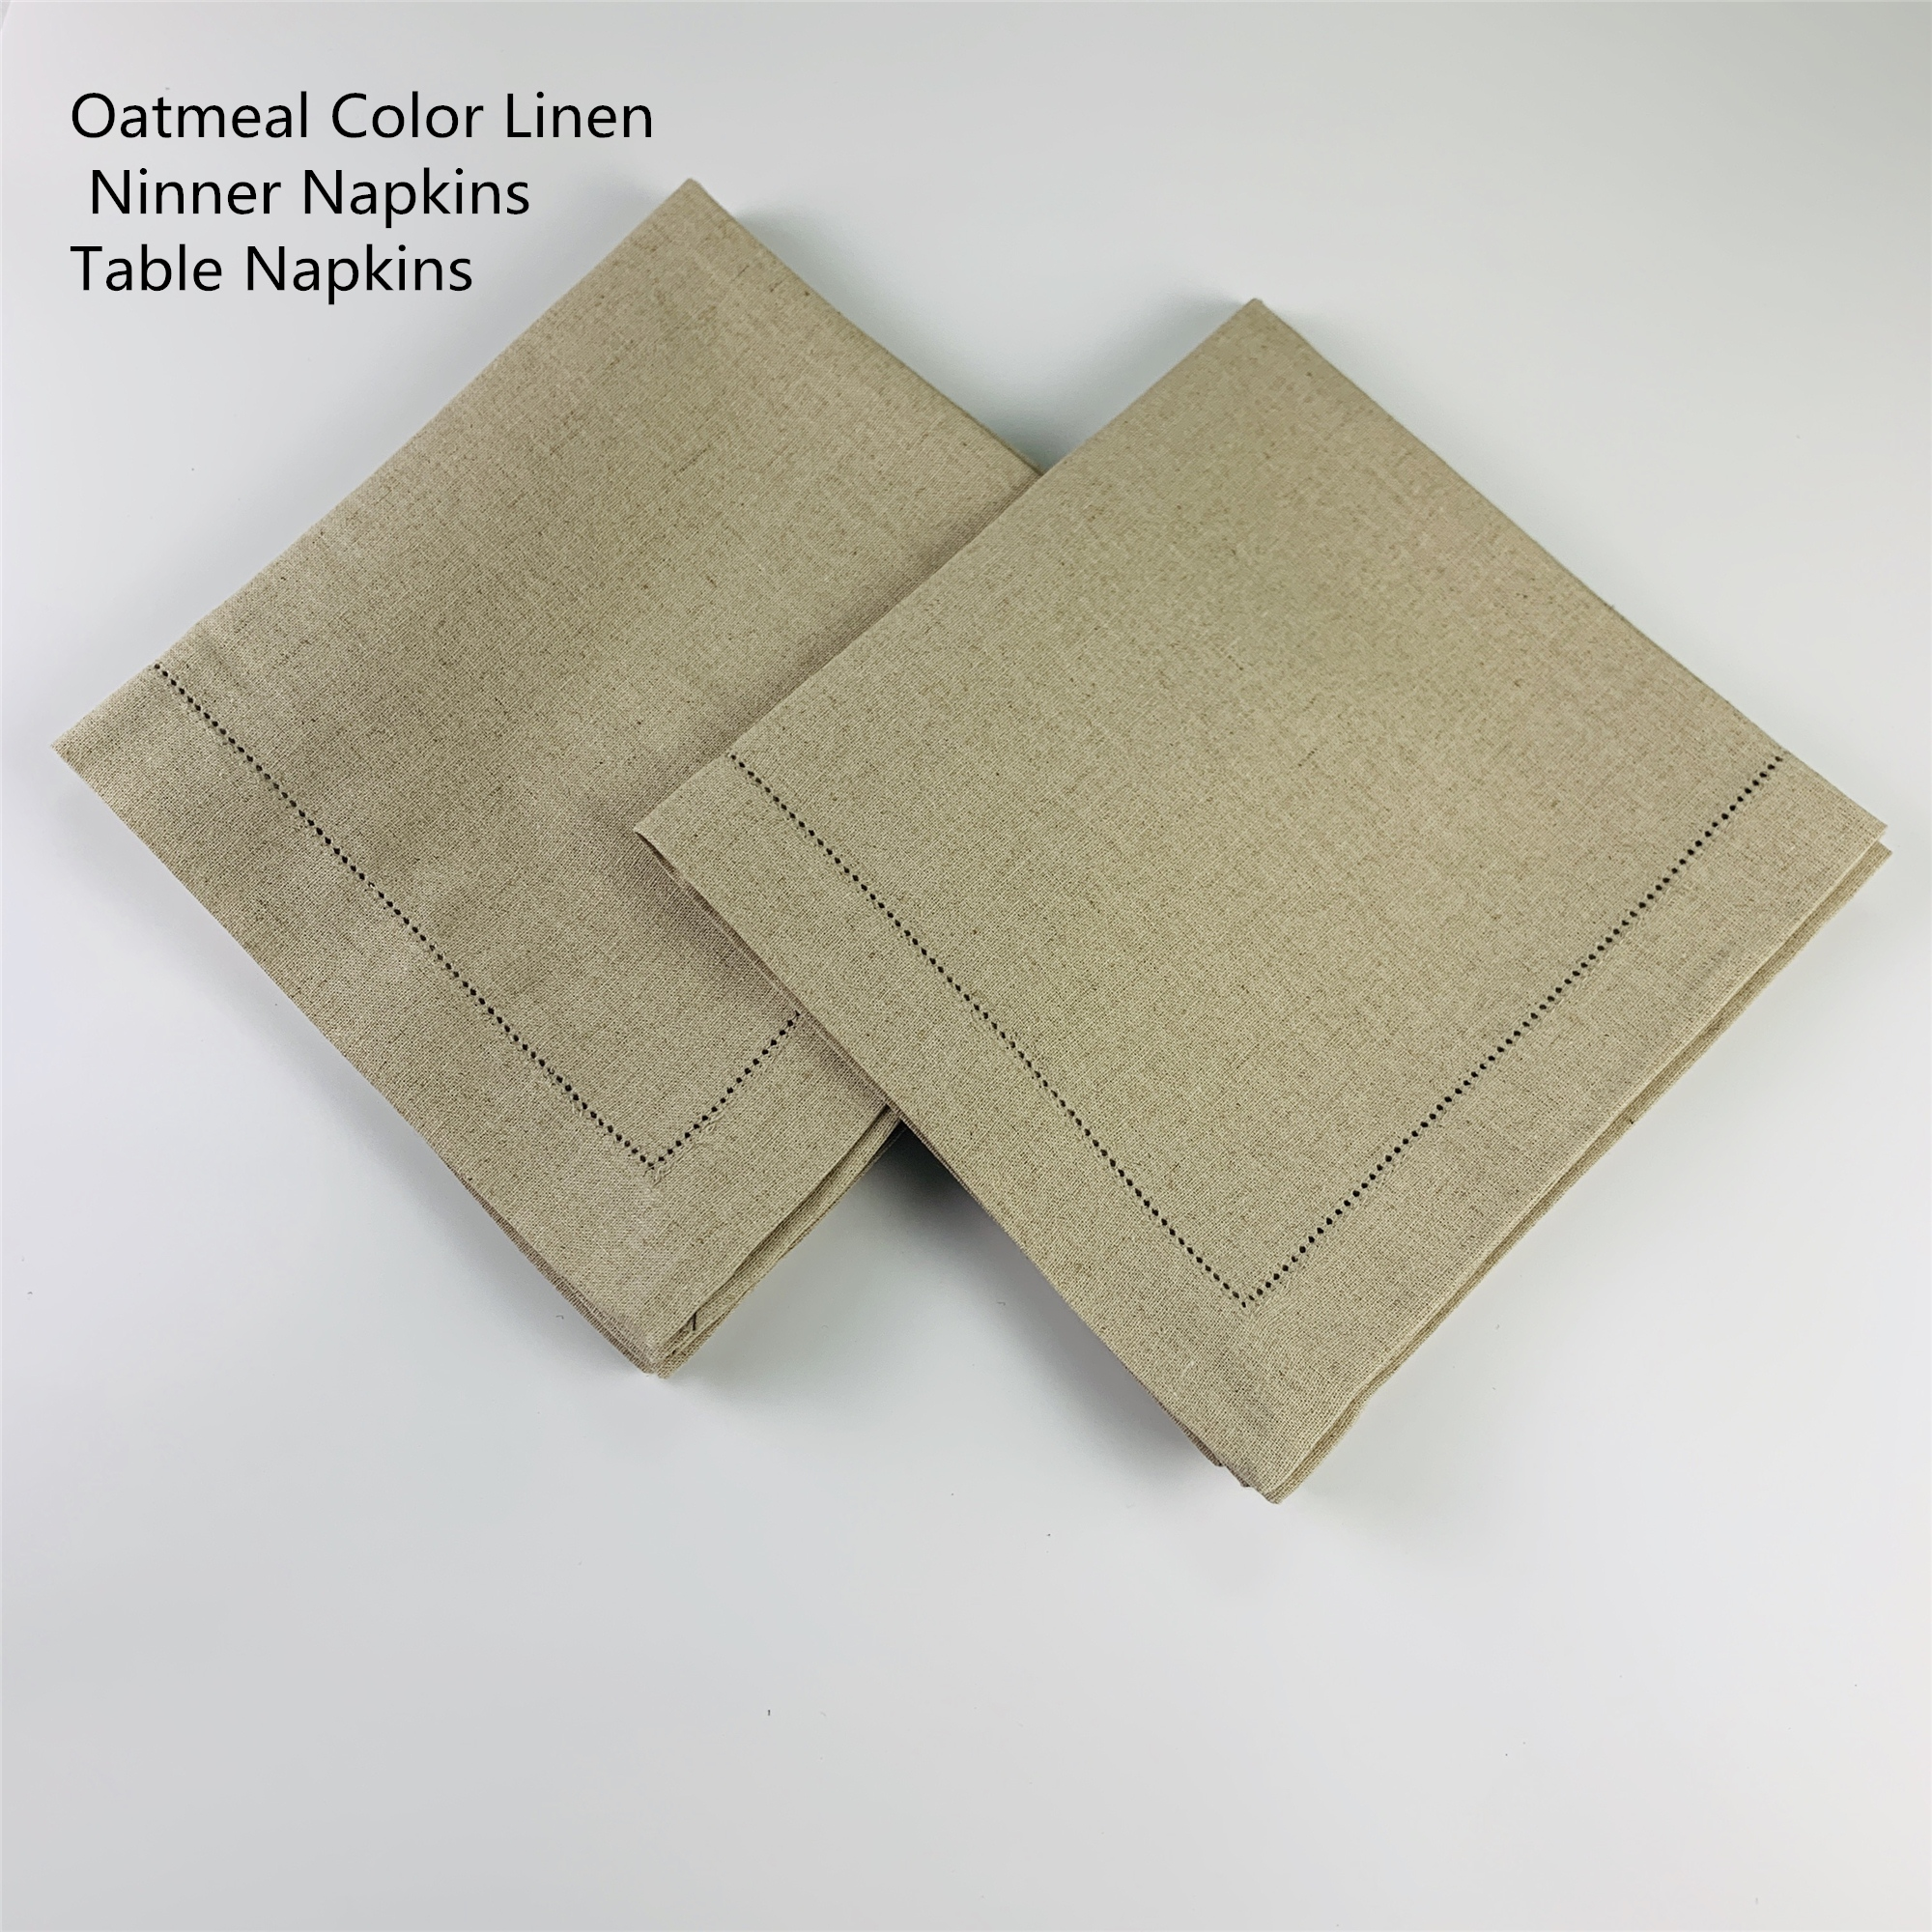 Set Of 12 Fshion Dinner Napkins  Oatmeal Color Linen Table Napkins 20x20-inch Ladder Embroidery Hemstitched Tea Napkins